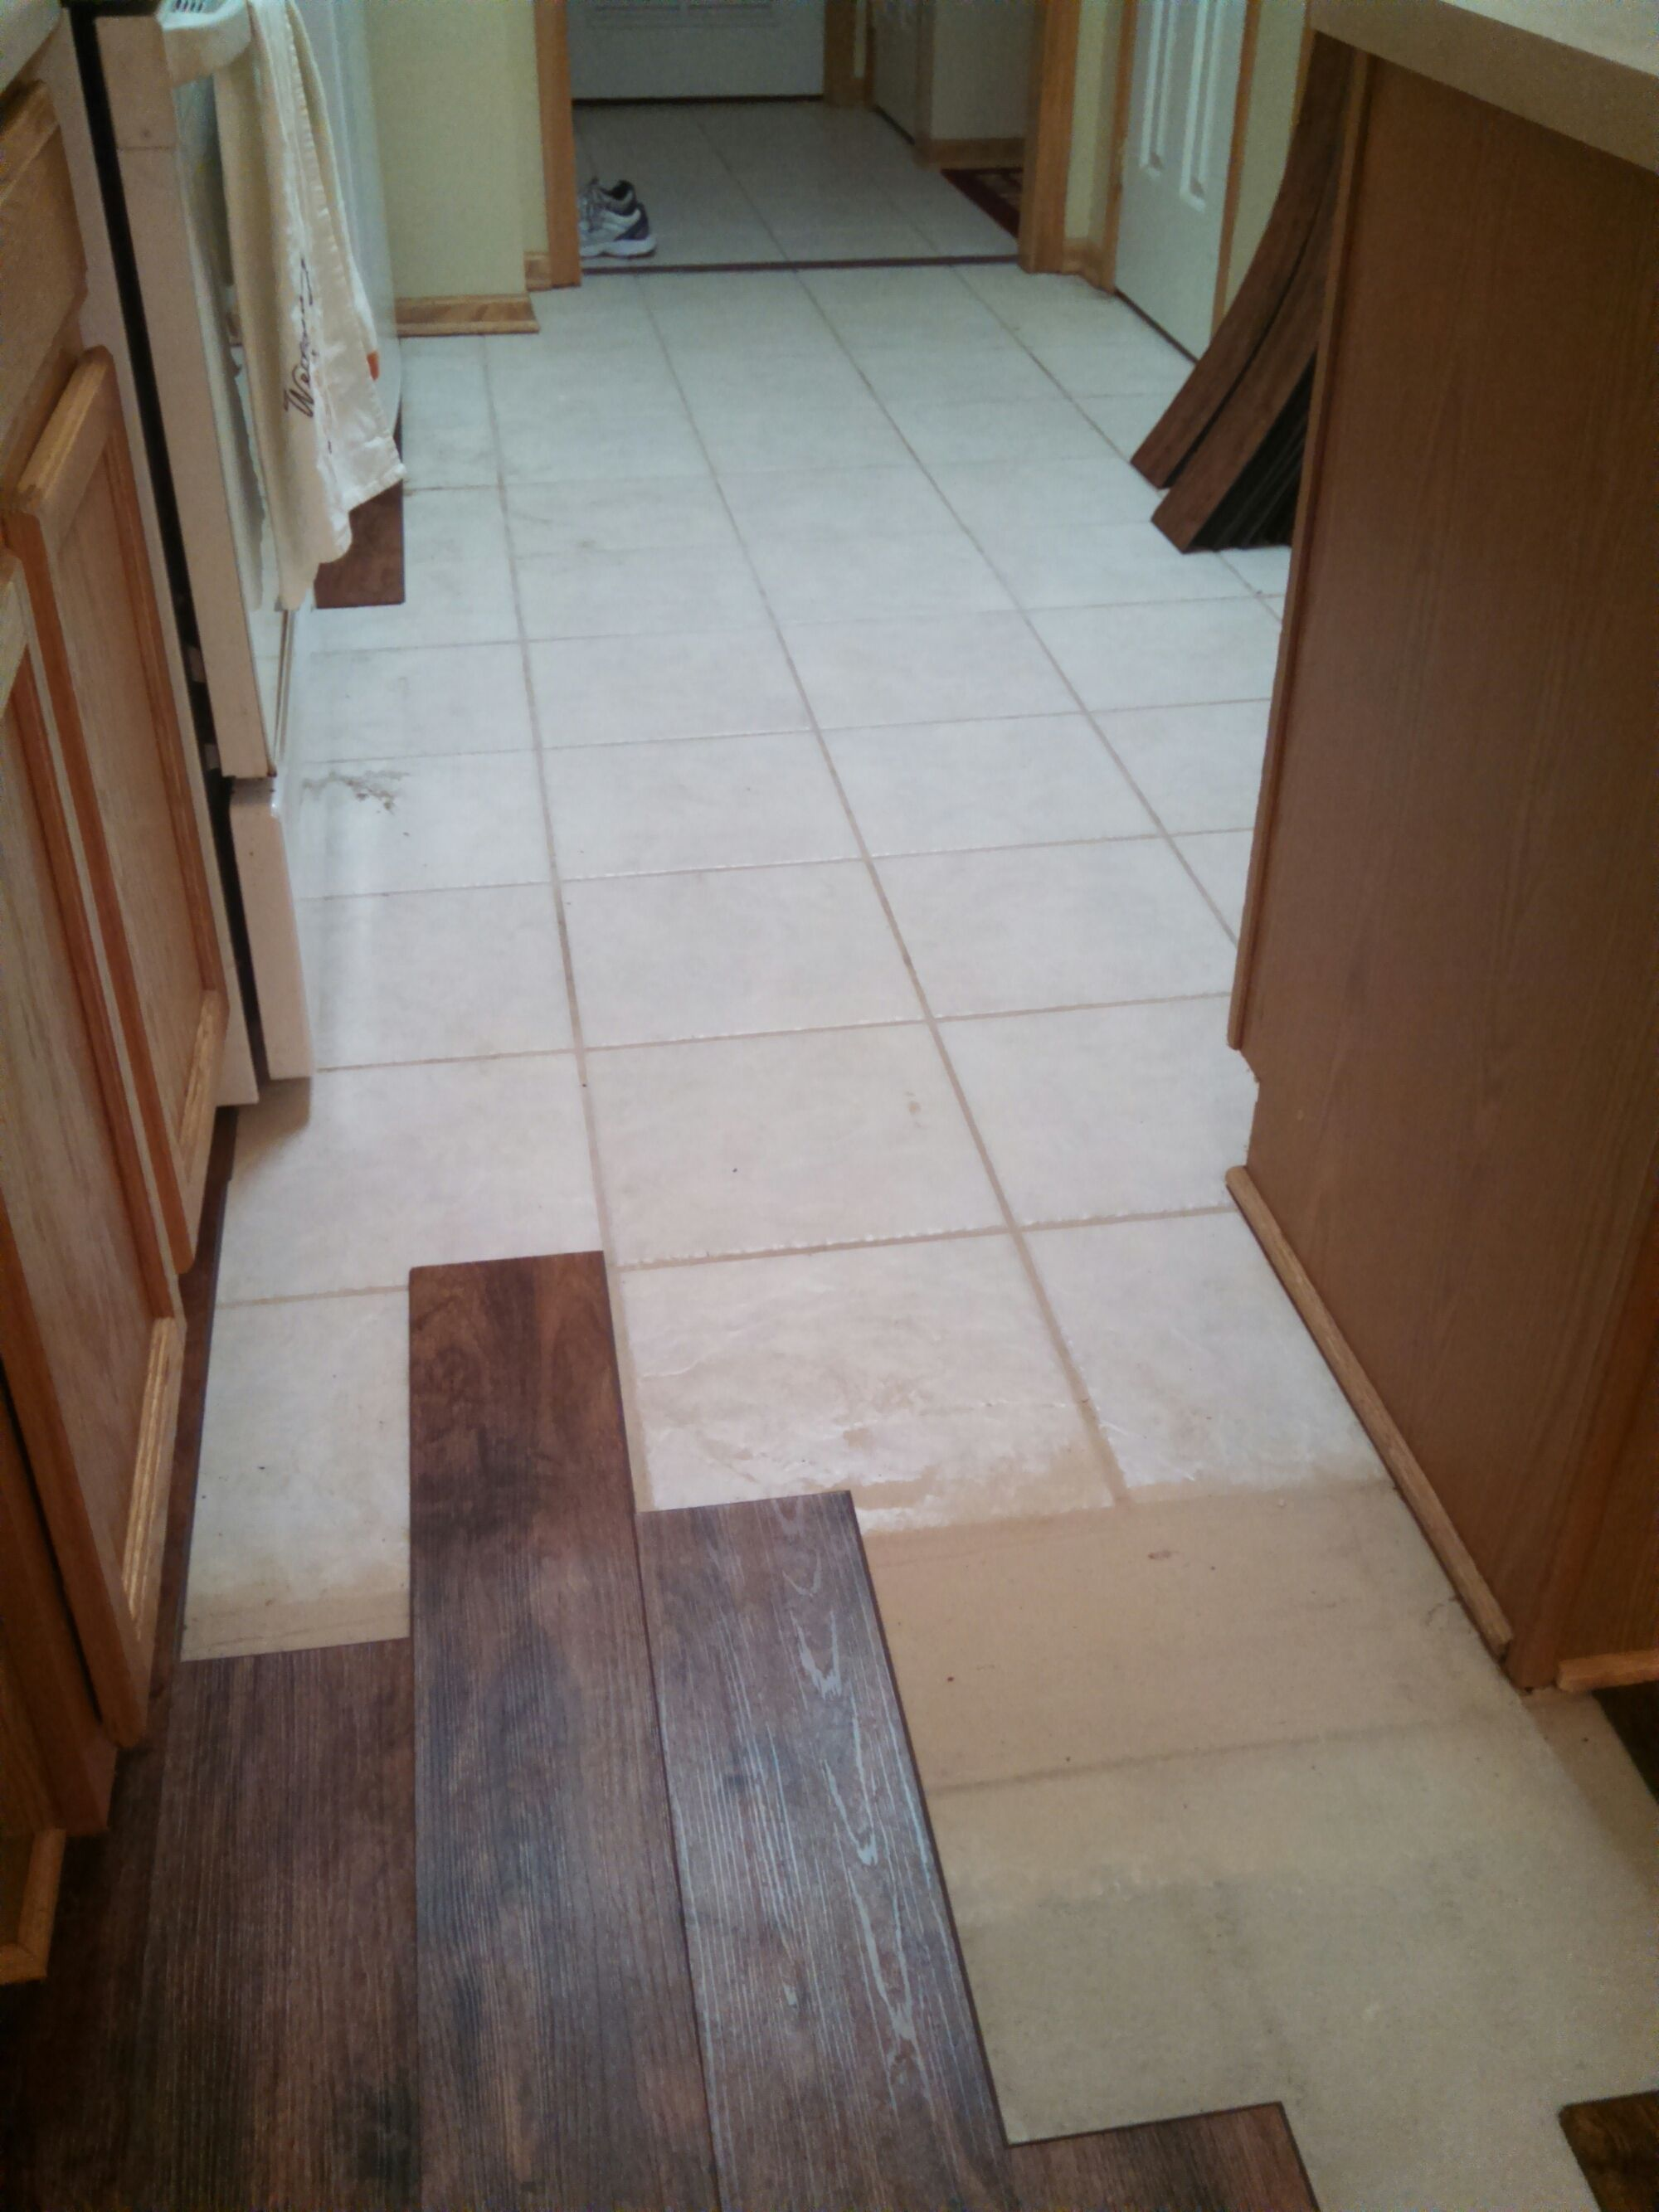 Laminate wood flooring over ceramic tile httpnextsoft21 laminate wood flooring over ceramic tile dailygadgetfo Images